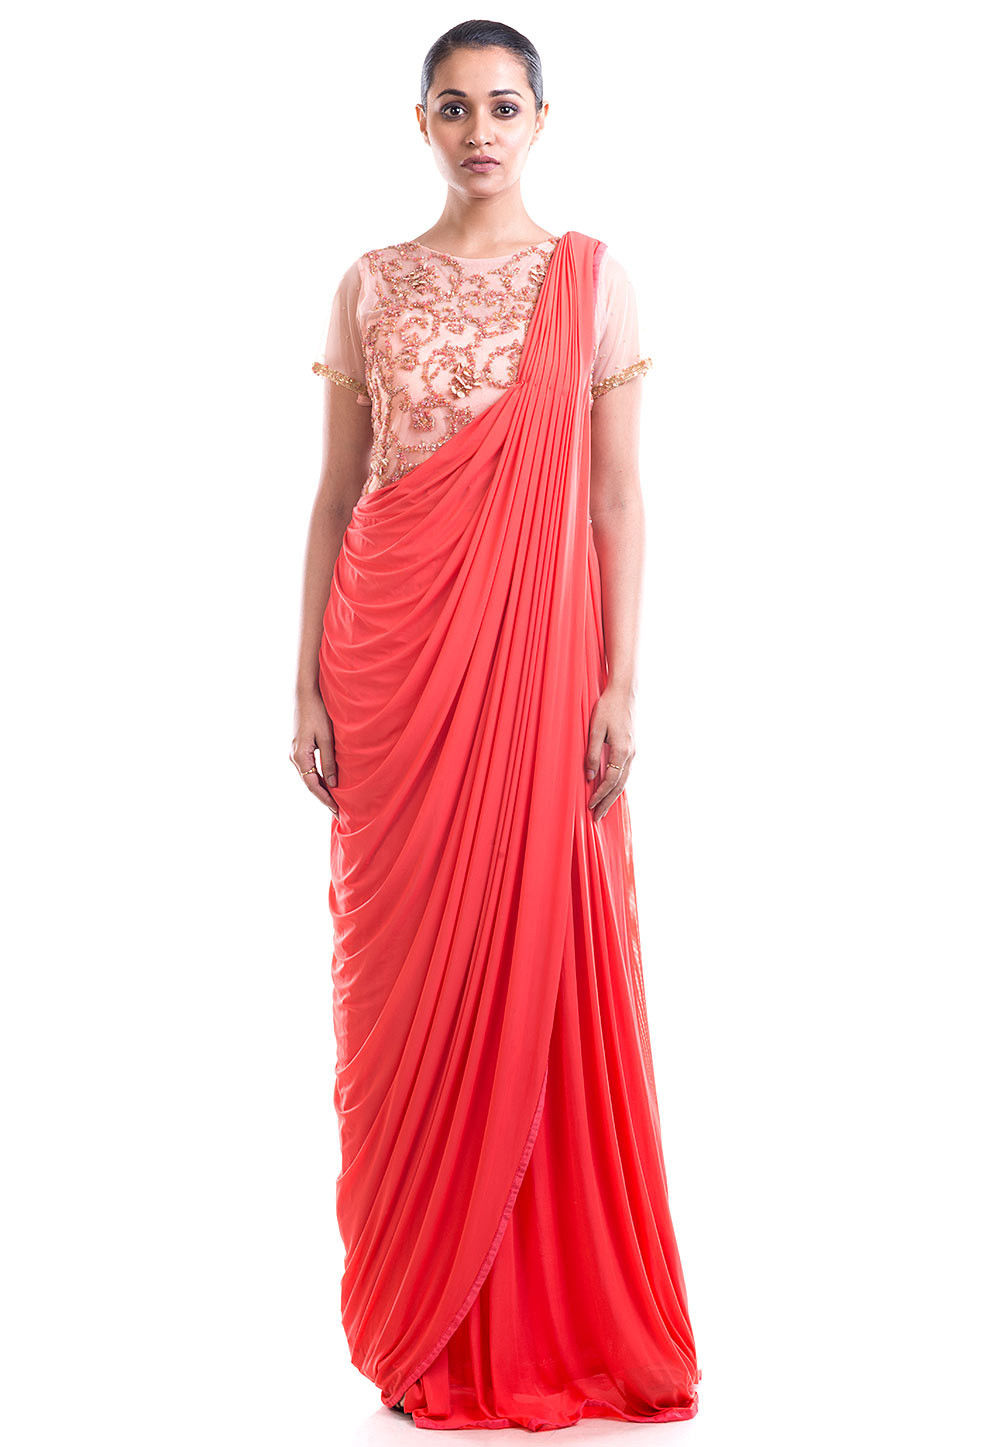 Hand Embroidered Net Saree Style Gown in Coral Red